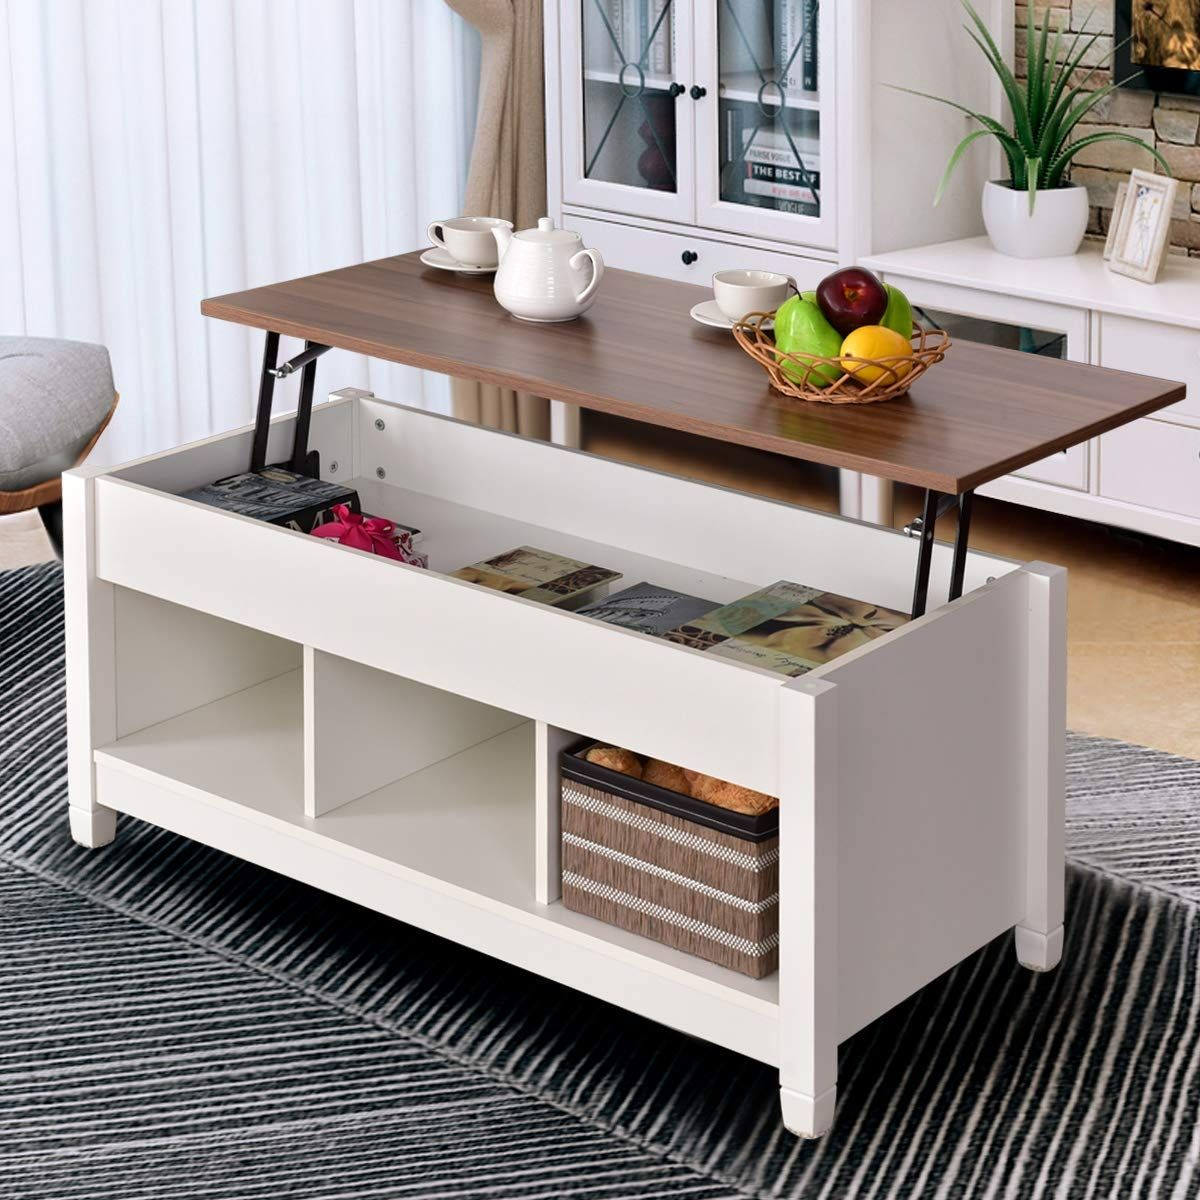 Pin By Diann Porter On Home Decor Convertible Furniture Coffee Table With Storage Coffee Table [ 1200 x 1200 Pixel ]